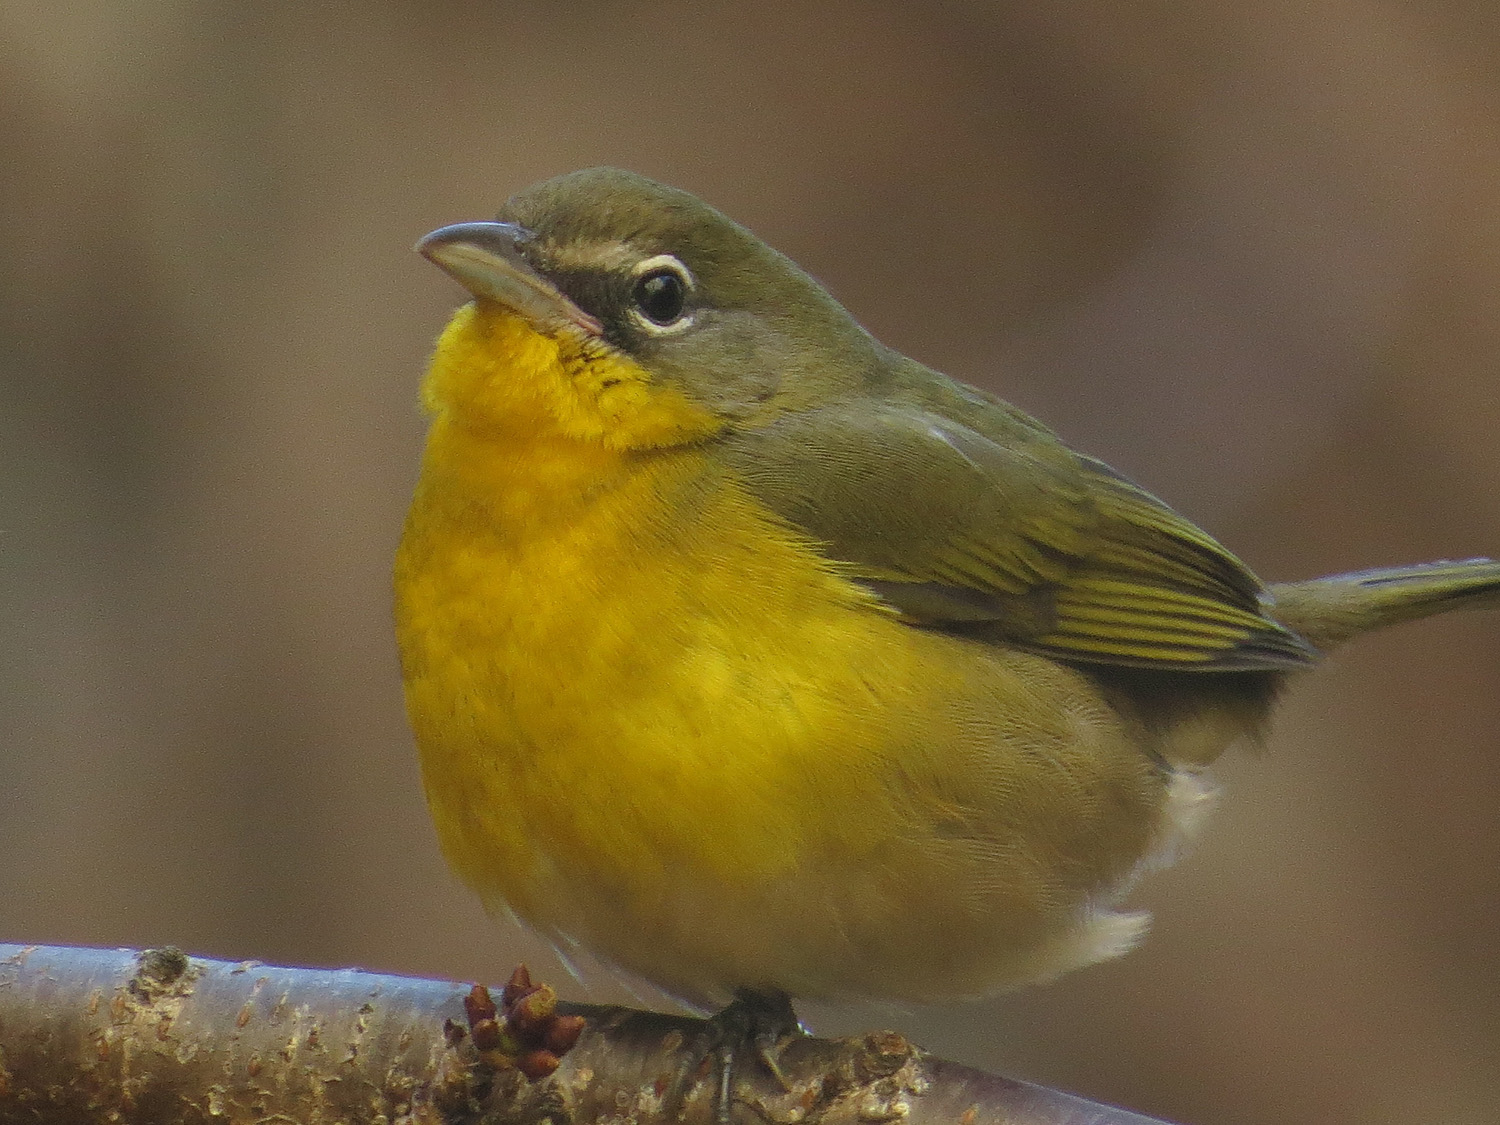 Yellow-breasted chat at Trinity Church, Lower Manhattan, Nov. 18, 2016